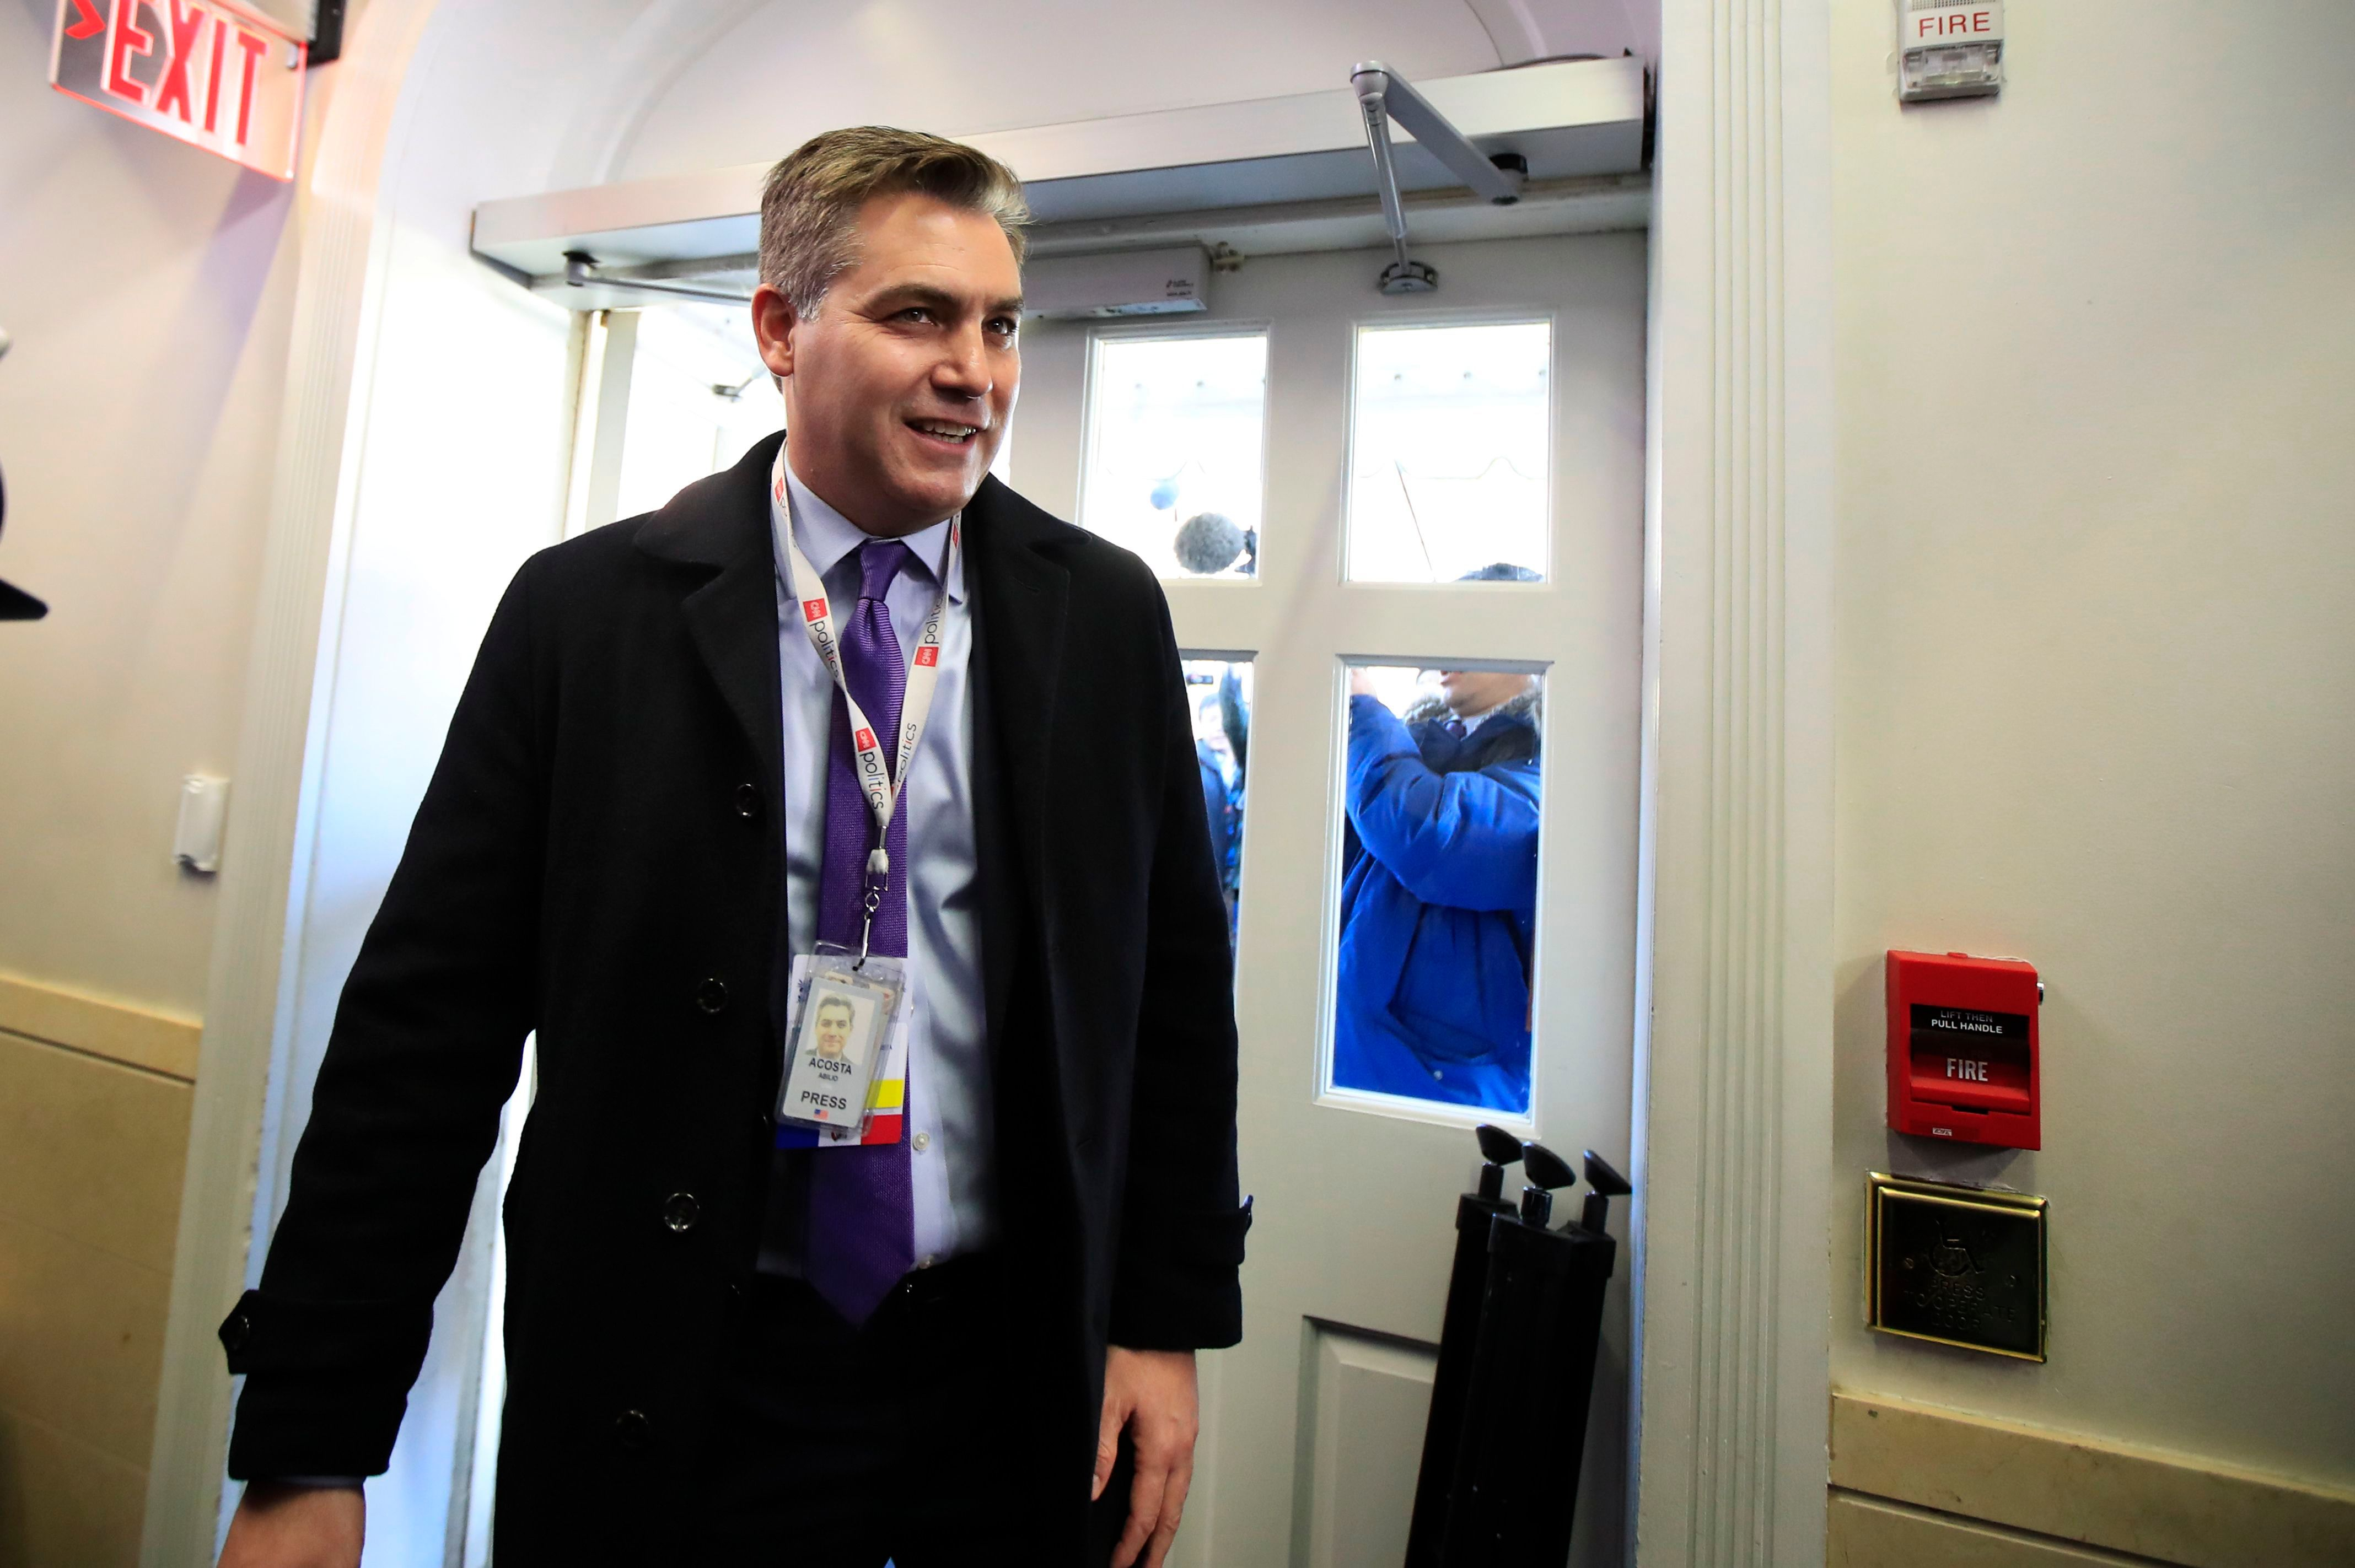 CNN's Jim Acosta enters the Brady press briefing room upon returning back to the White House in Washington on Nov. 16, 2018.